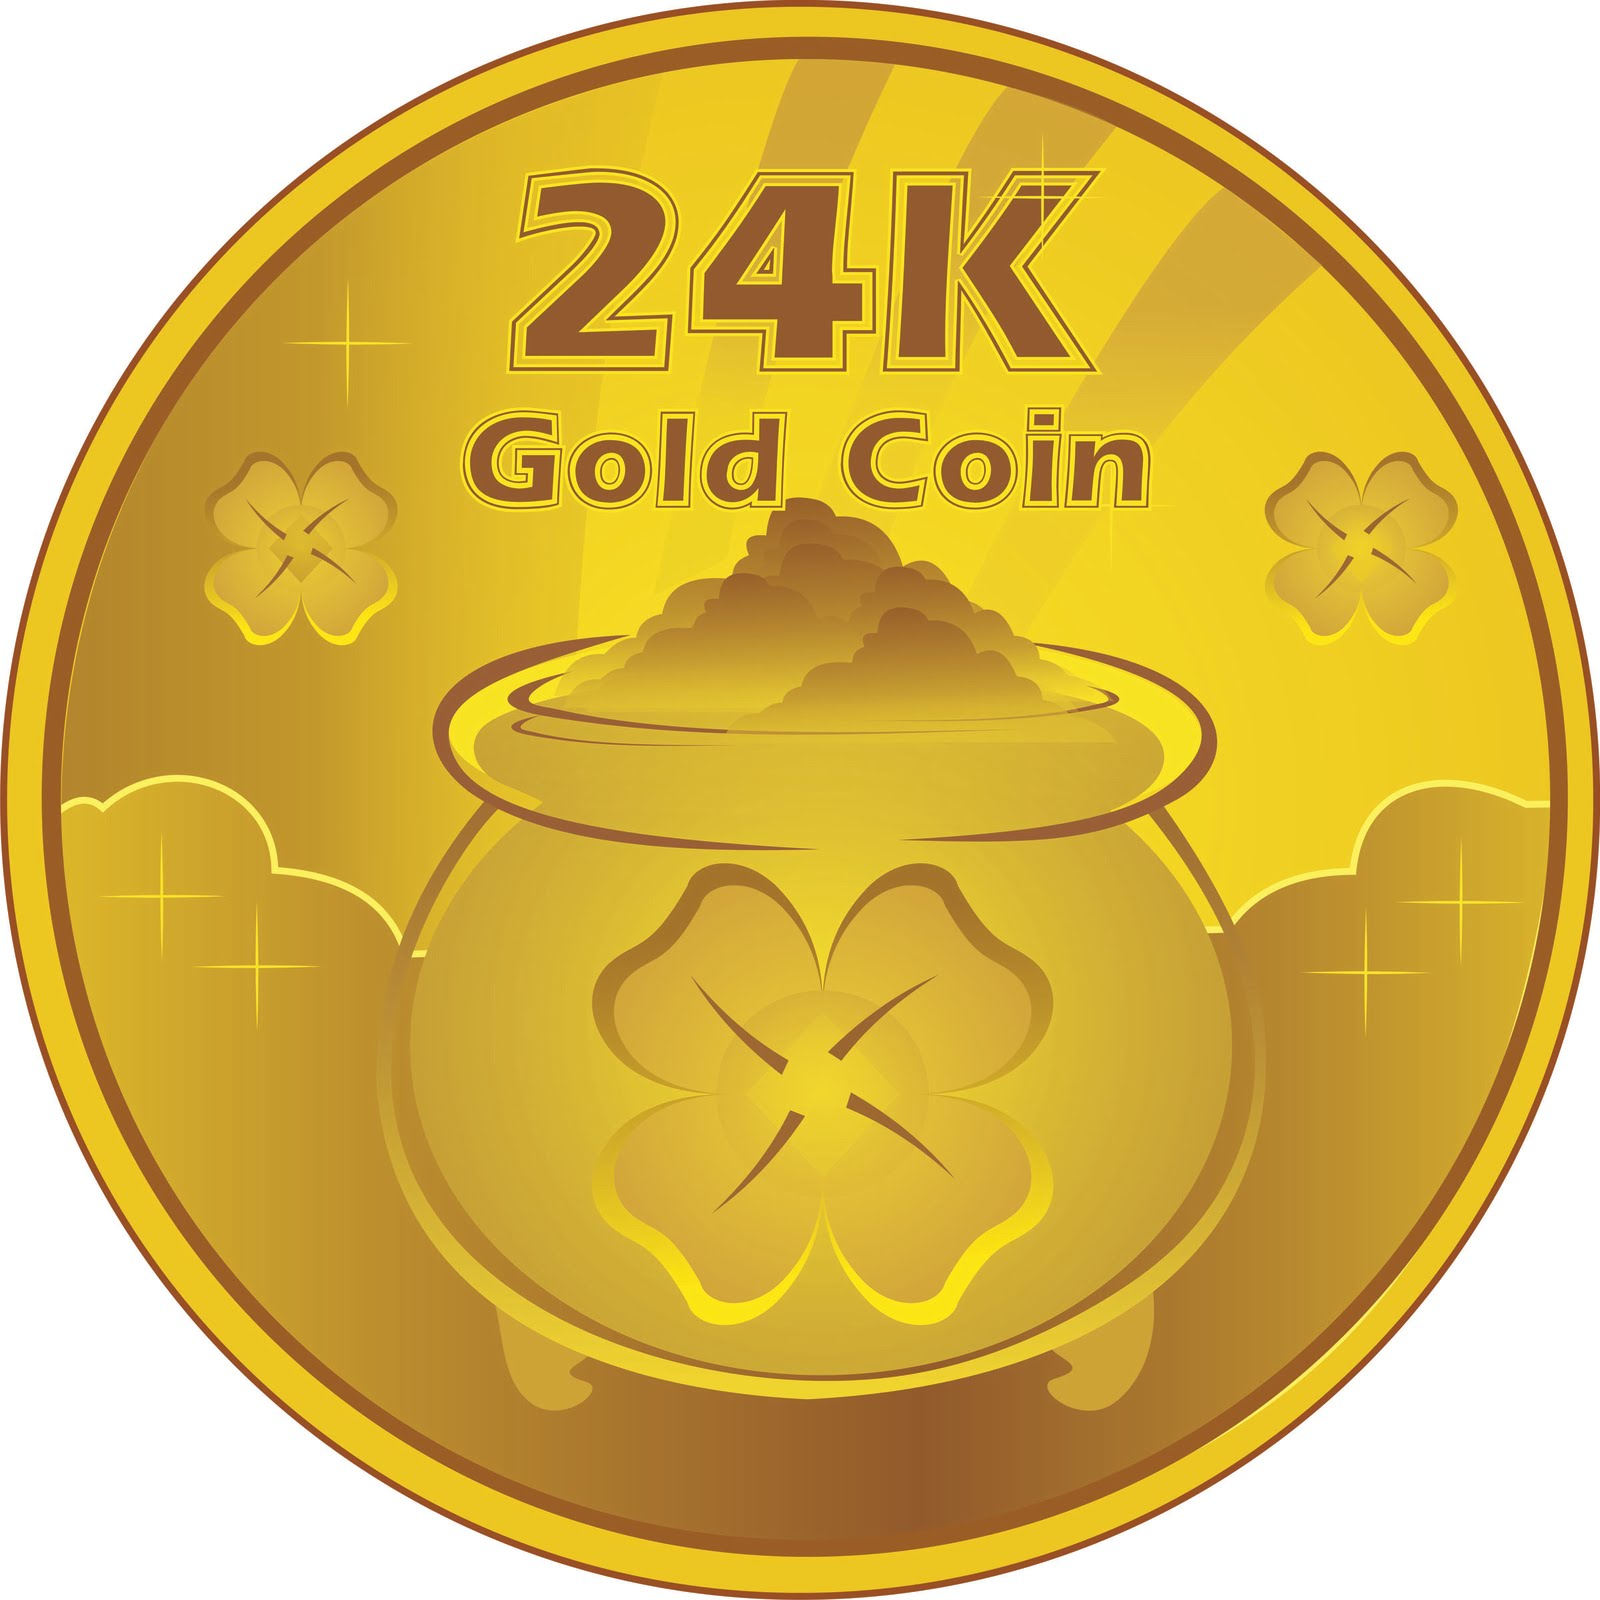 Free Gold Coins Picture, Download Free Clip Art, Free Clip ... (1600 x 1600 Pixel)